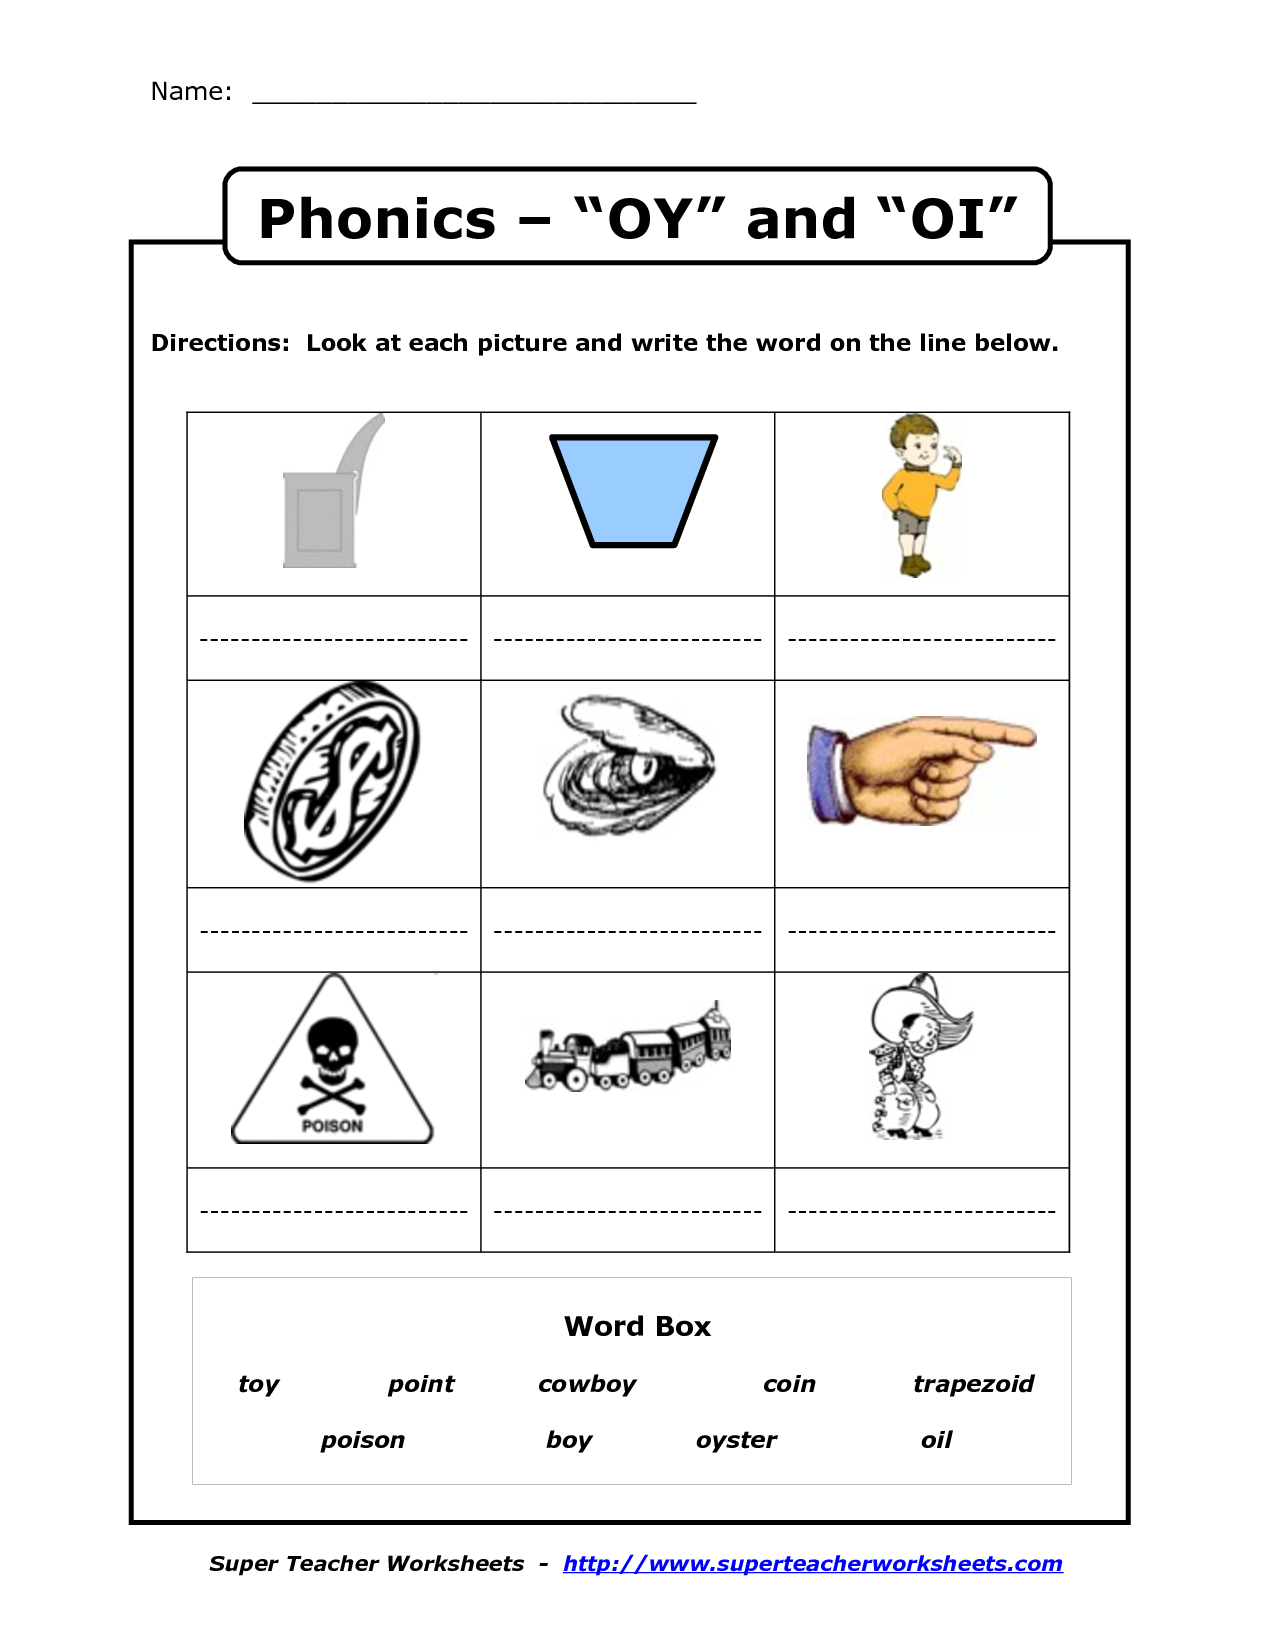 worksheet Oi And Oy Worksheets oy and oi phonics worksheets school worksheets